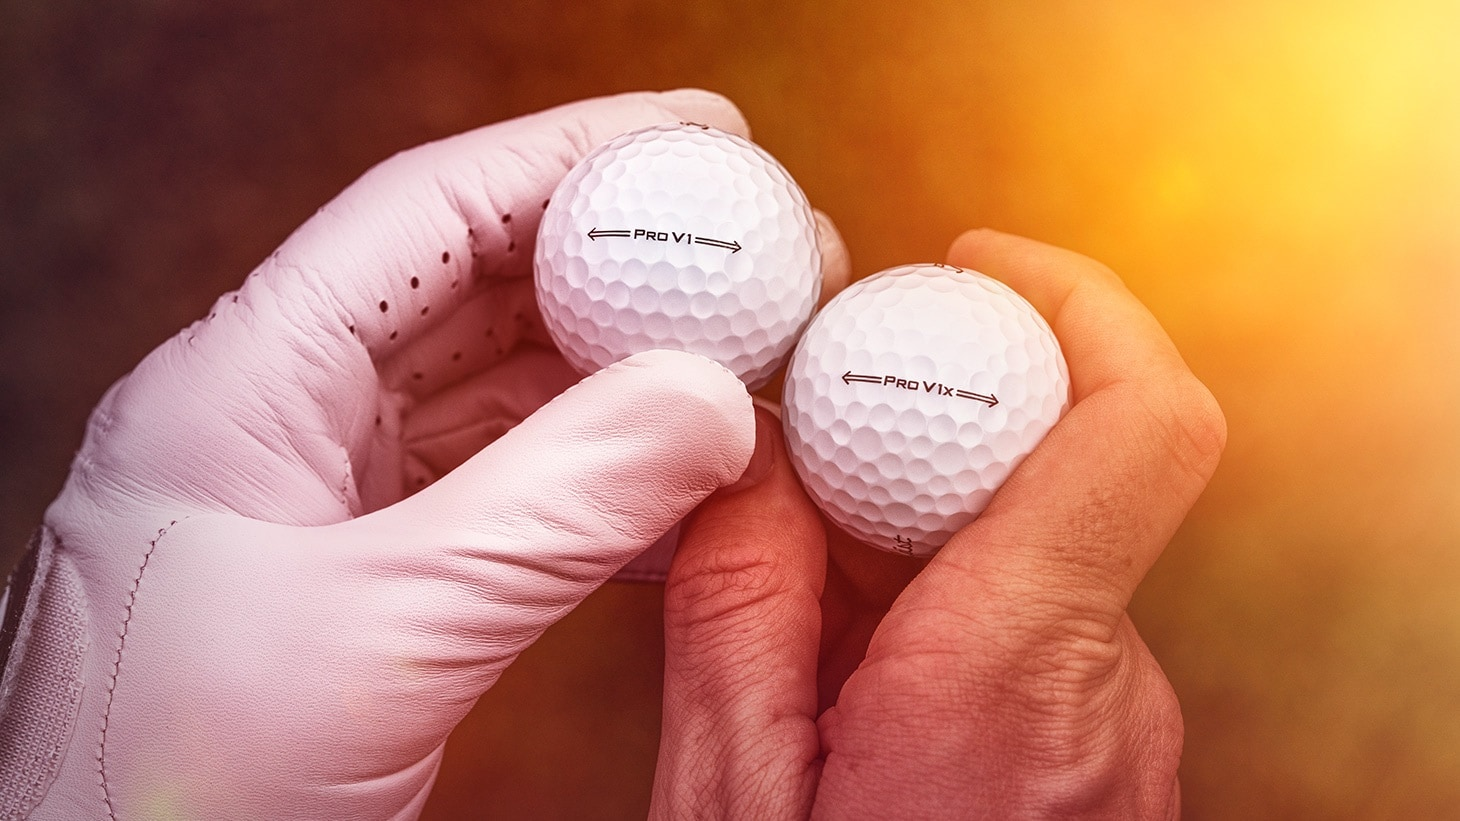 A golfer admires the new sidestamp designs on the 2021 Titleist Pro V1 and Pro V1x golf balls.